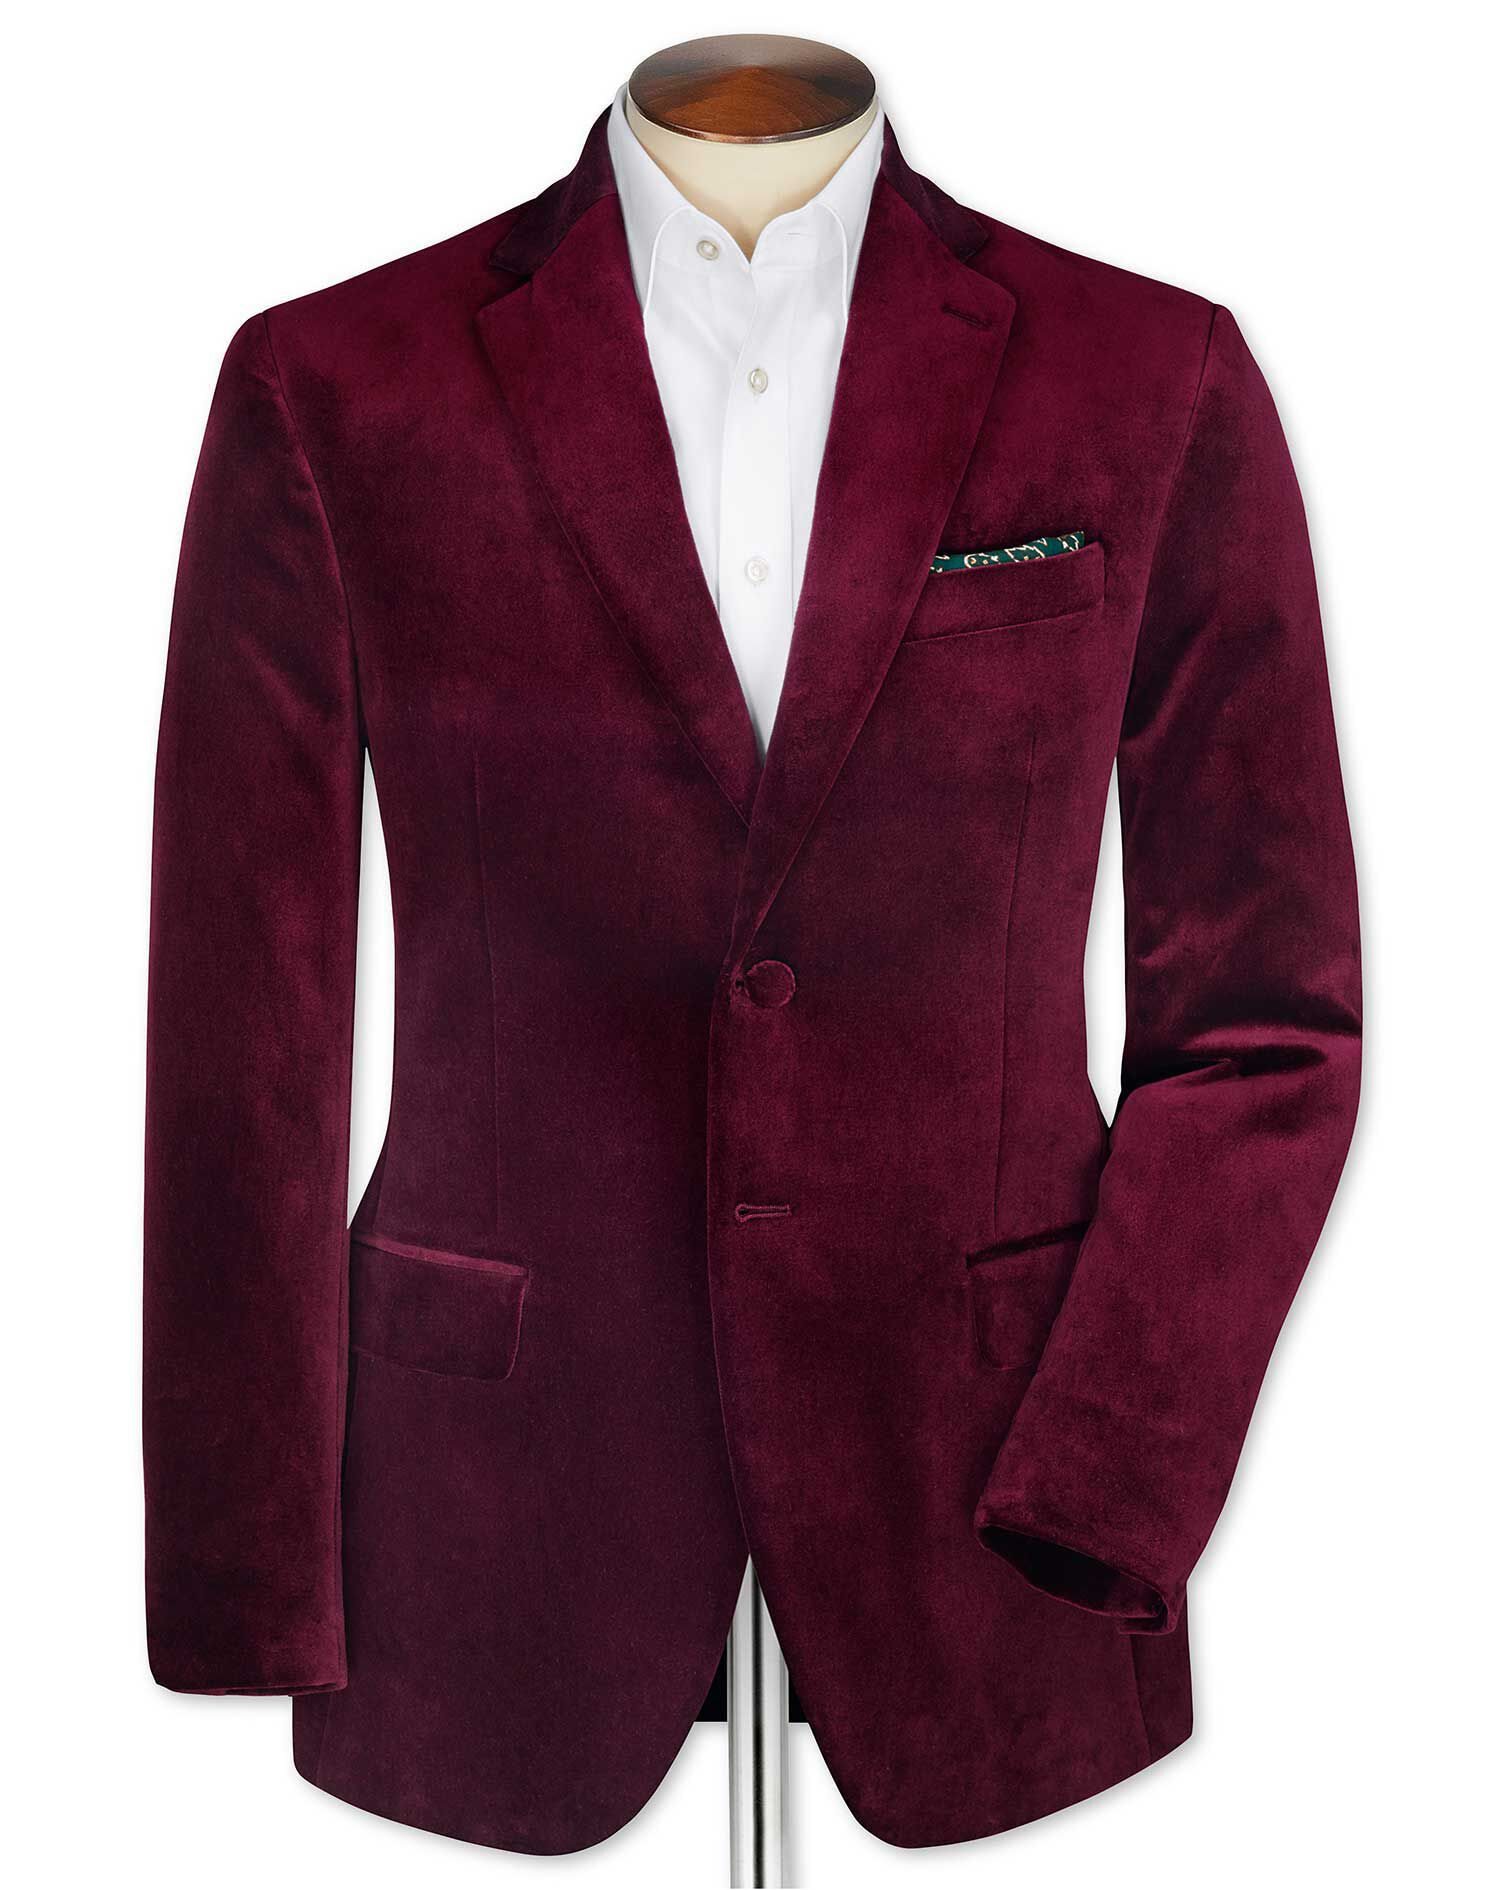 Slim Fit Burgundy Velvet Cotton Blazer Size 42 Long by Charles Tyrwhitt